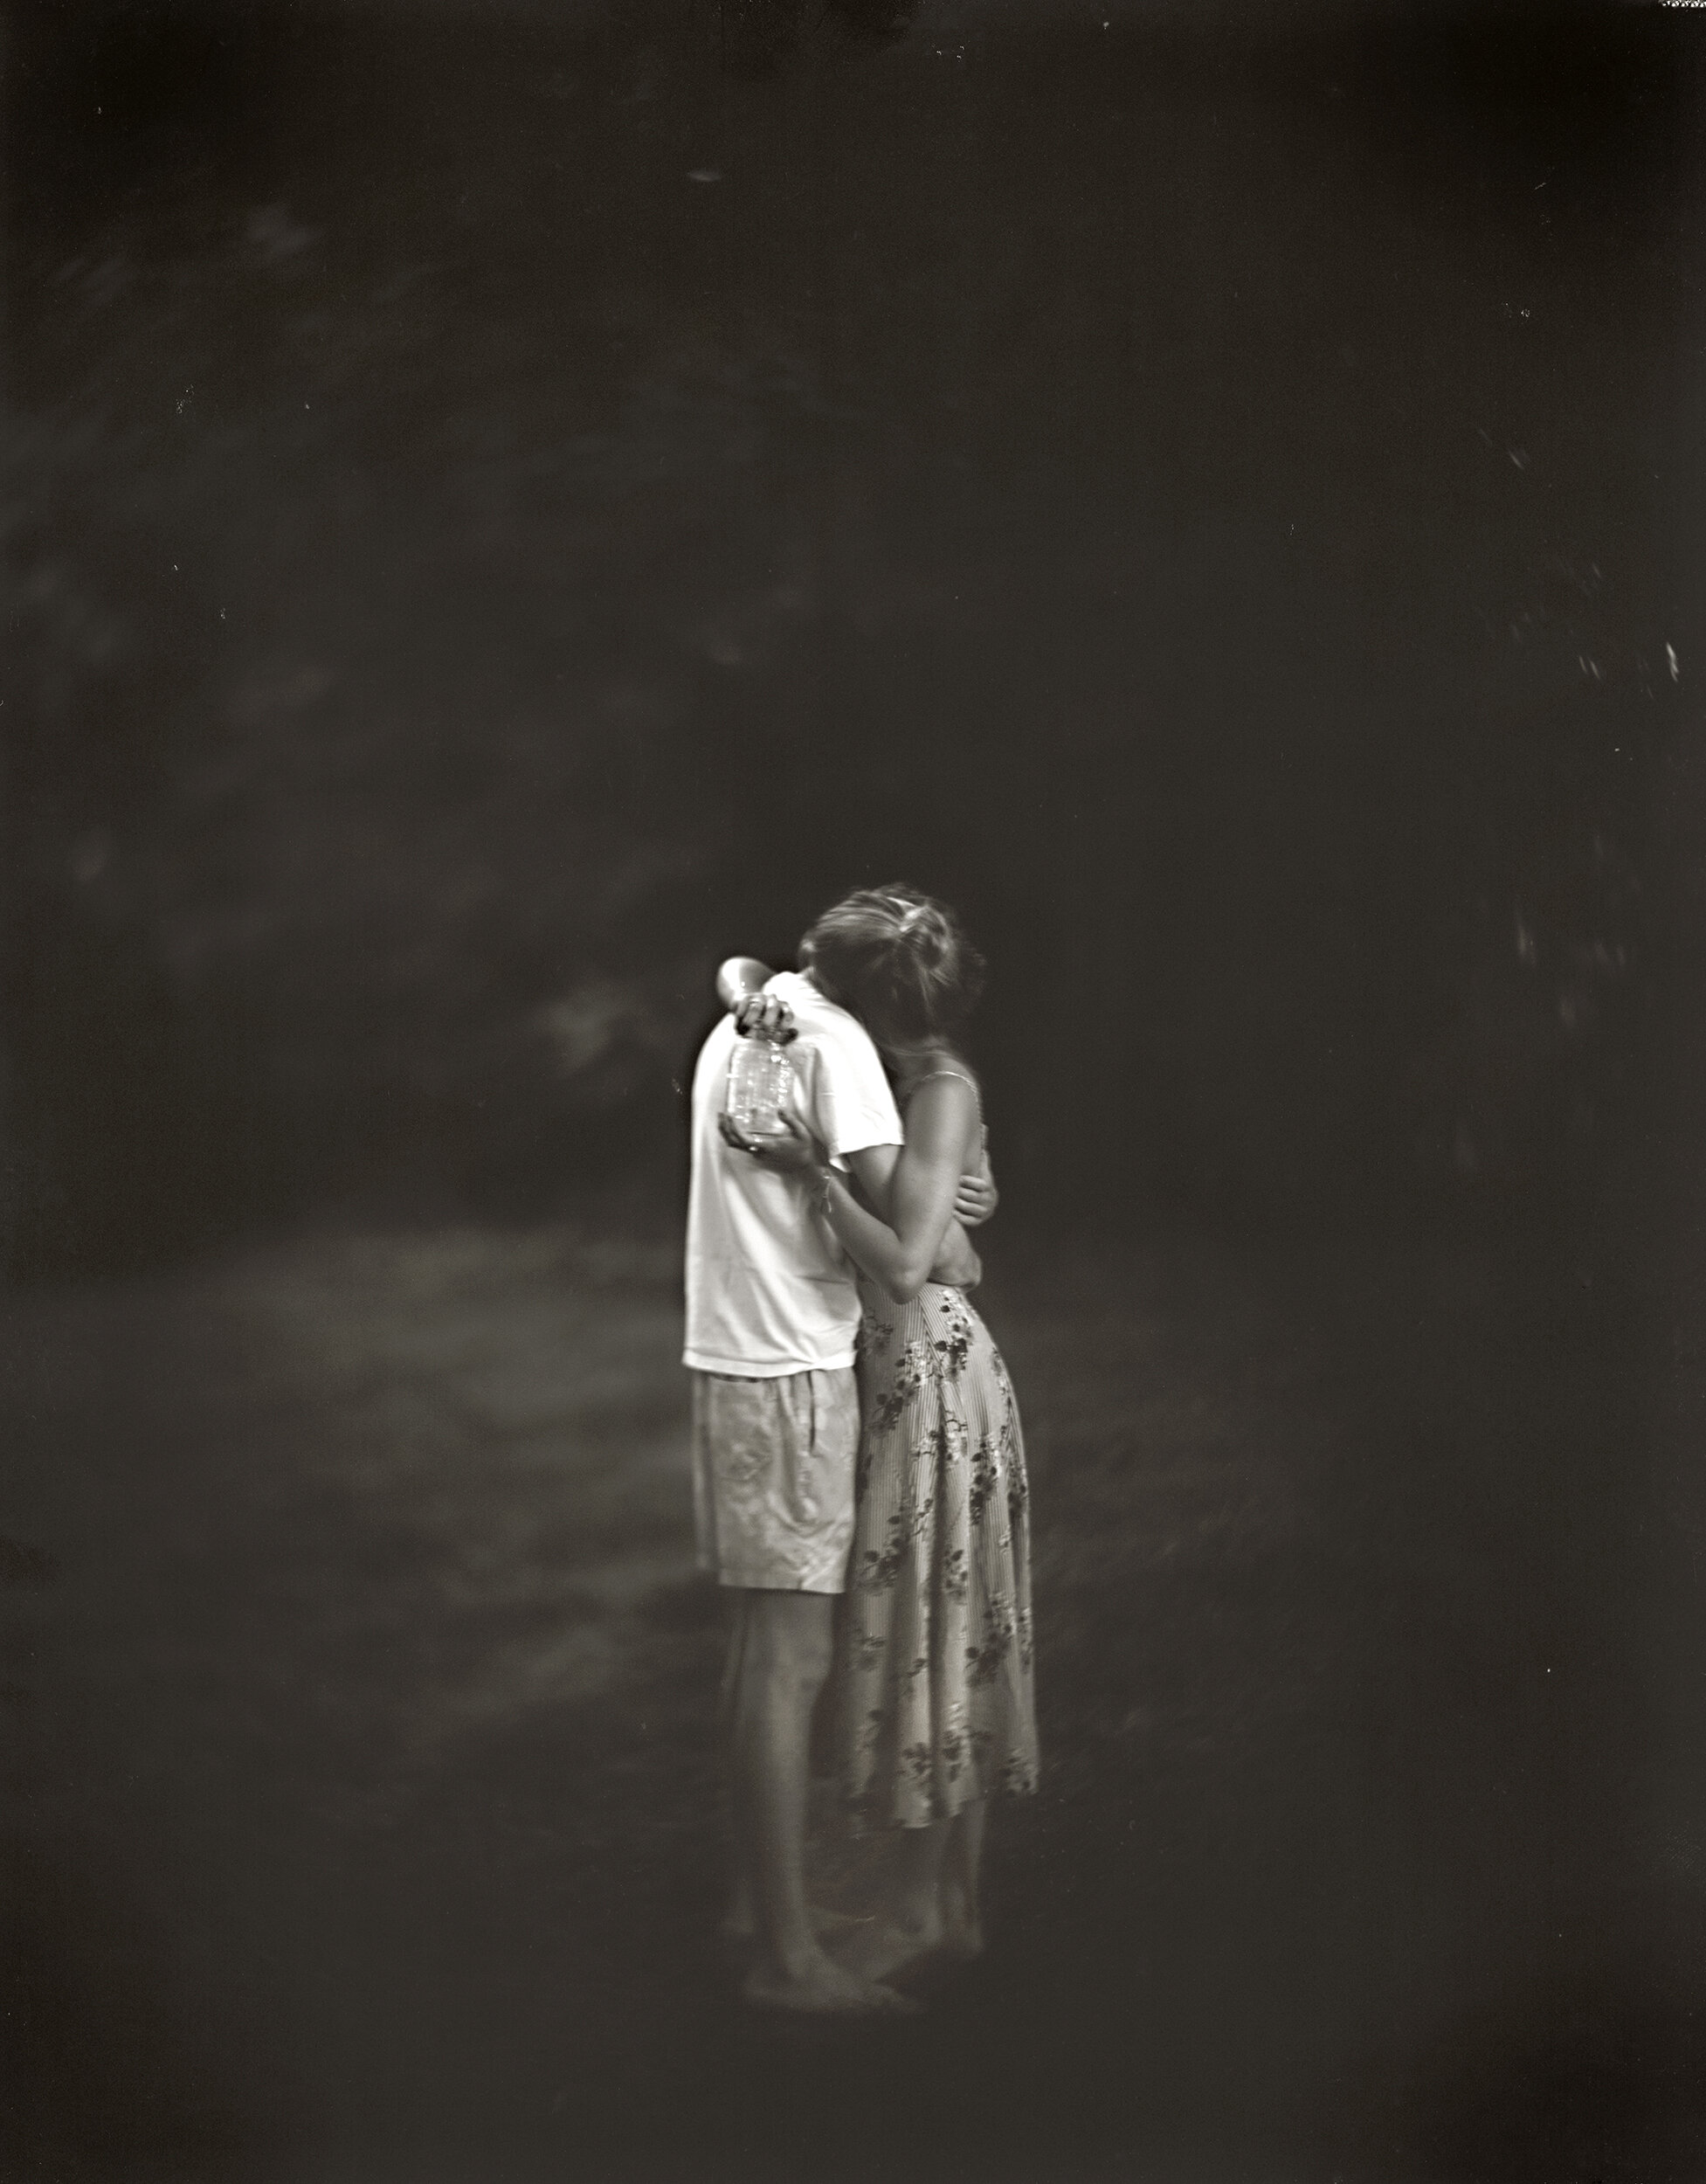 MOONLIGHT, FIREFLIES AND YOUNG LOVE, 2017  In honor of Keith Carter